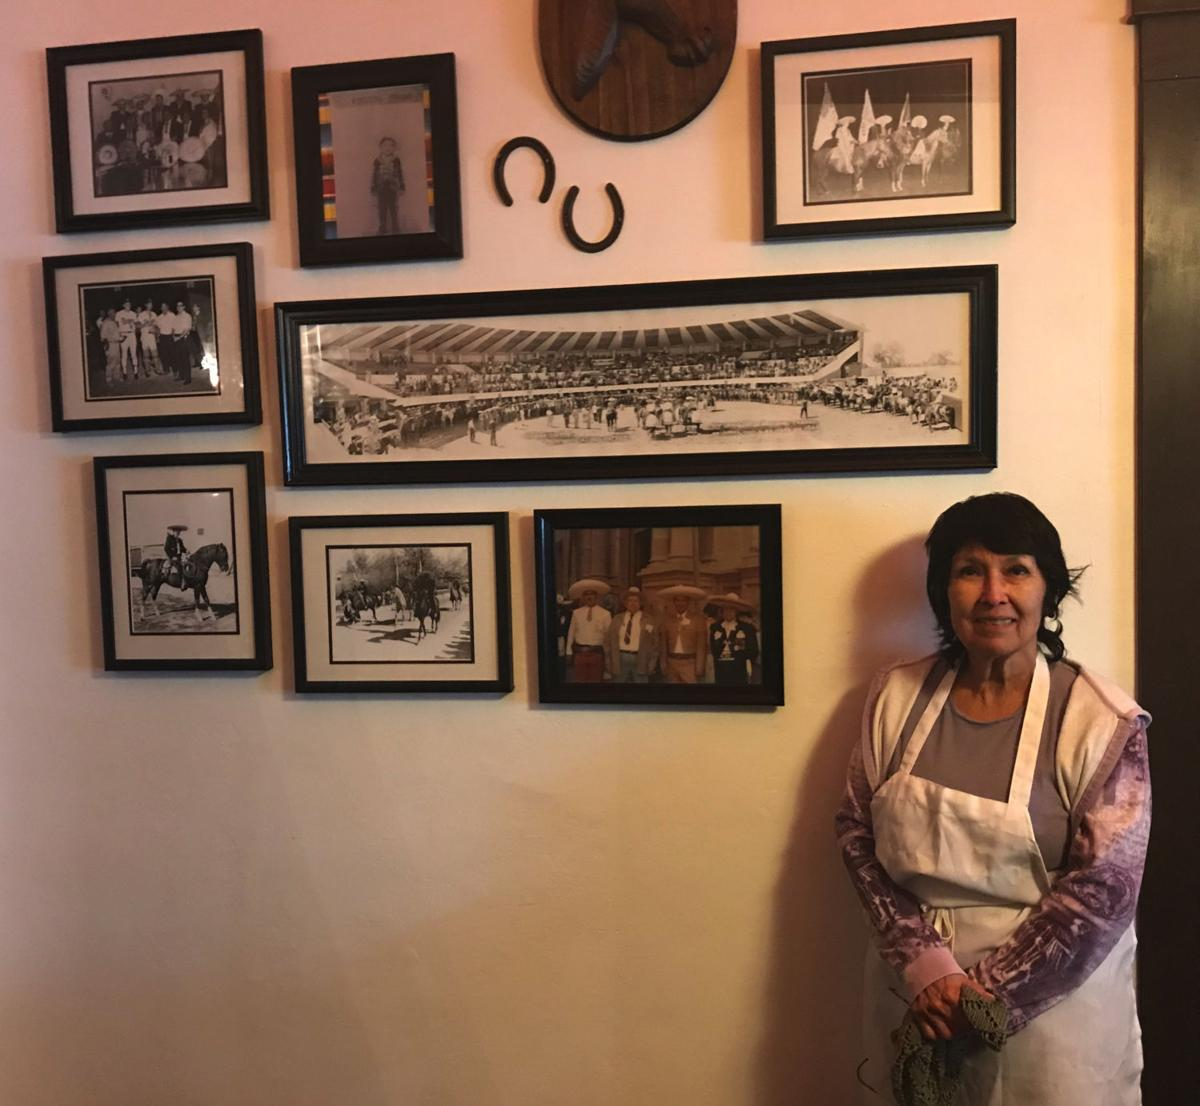 After 70 years, Sinaloa Restaurant closes 'forever'